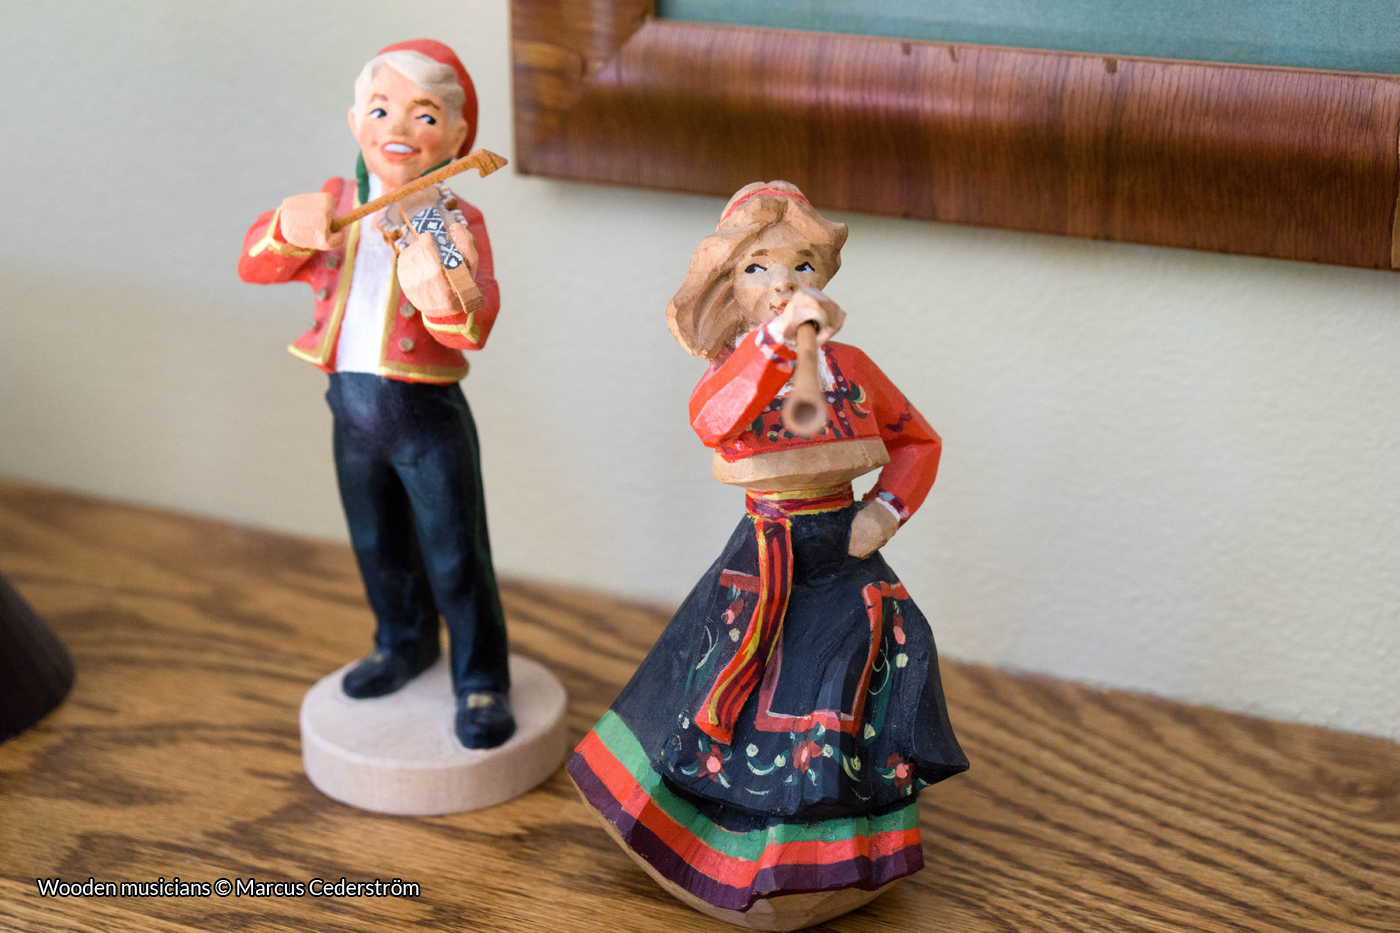 Two carved wooden figures: A man playing a fiddle, and a woman playing a wind instrument.